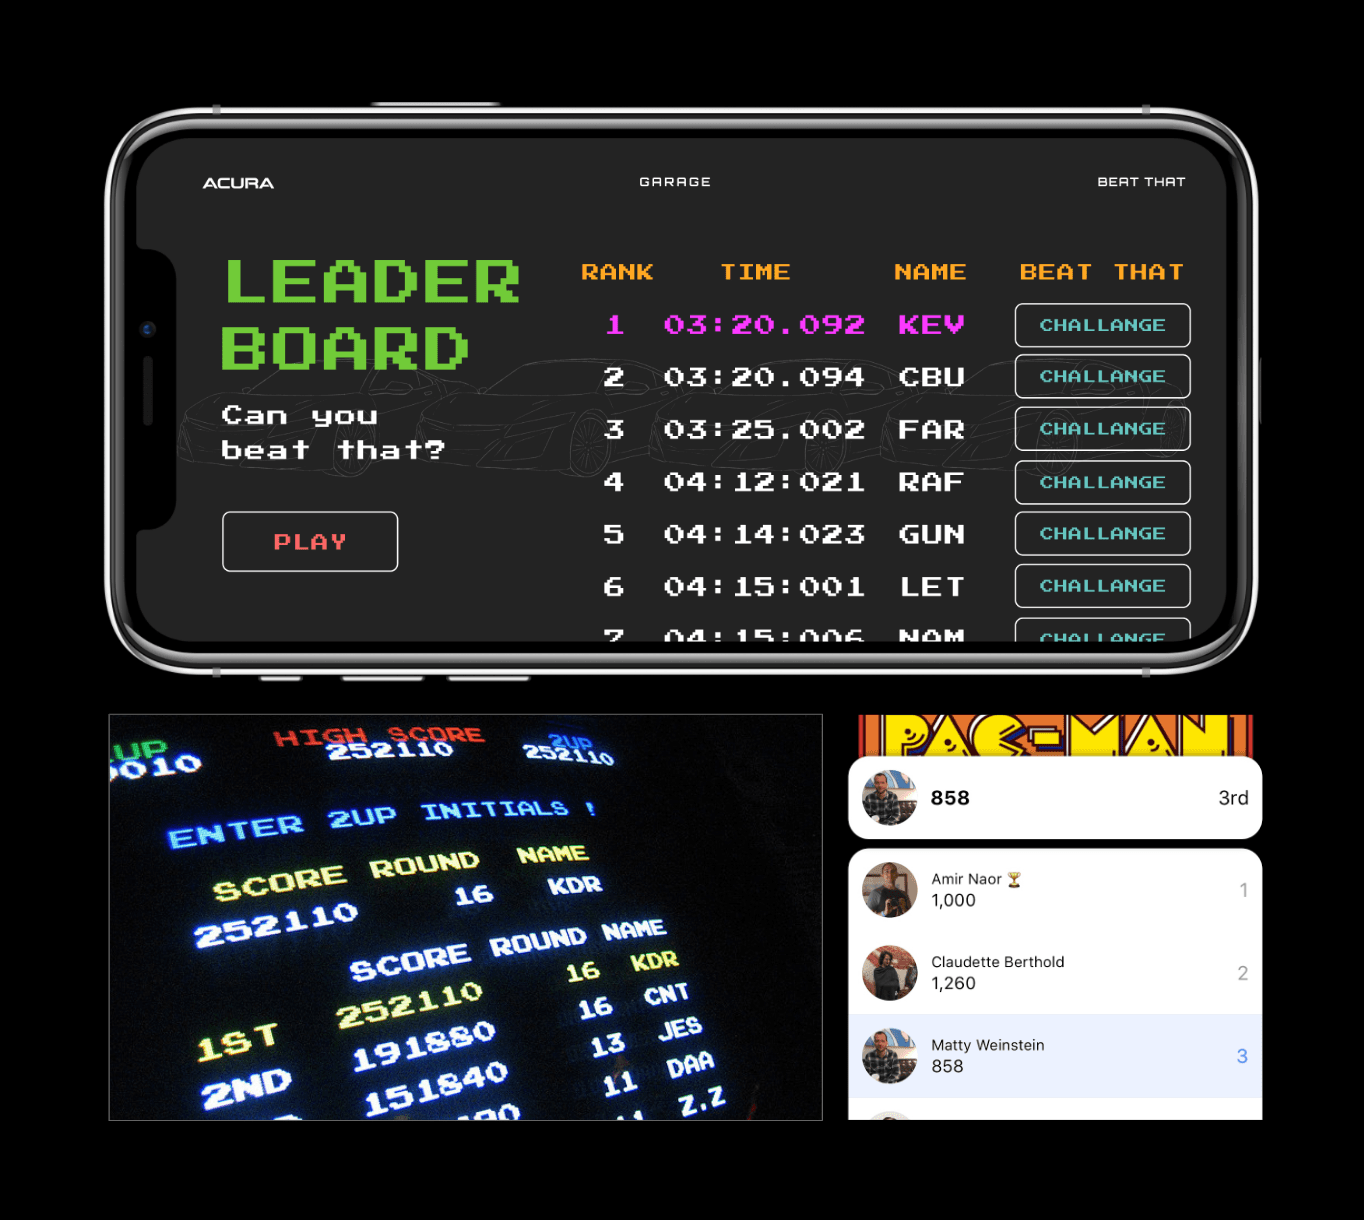 acura-beat-that-leaderboard